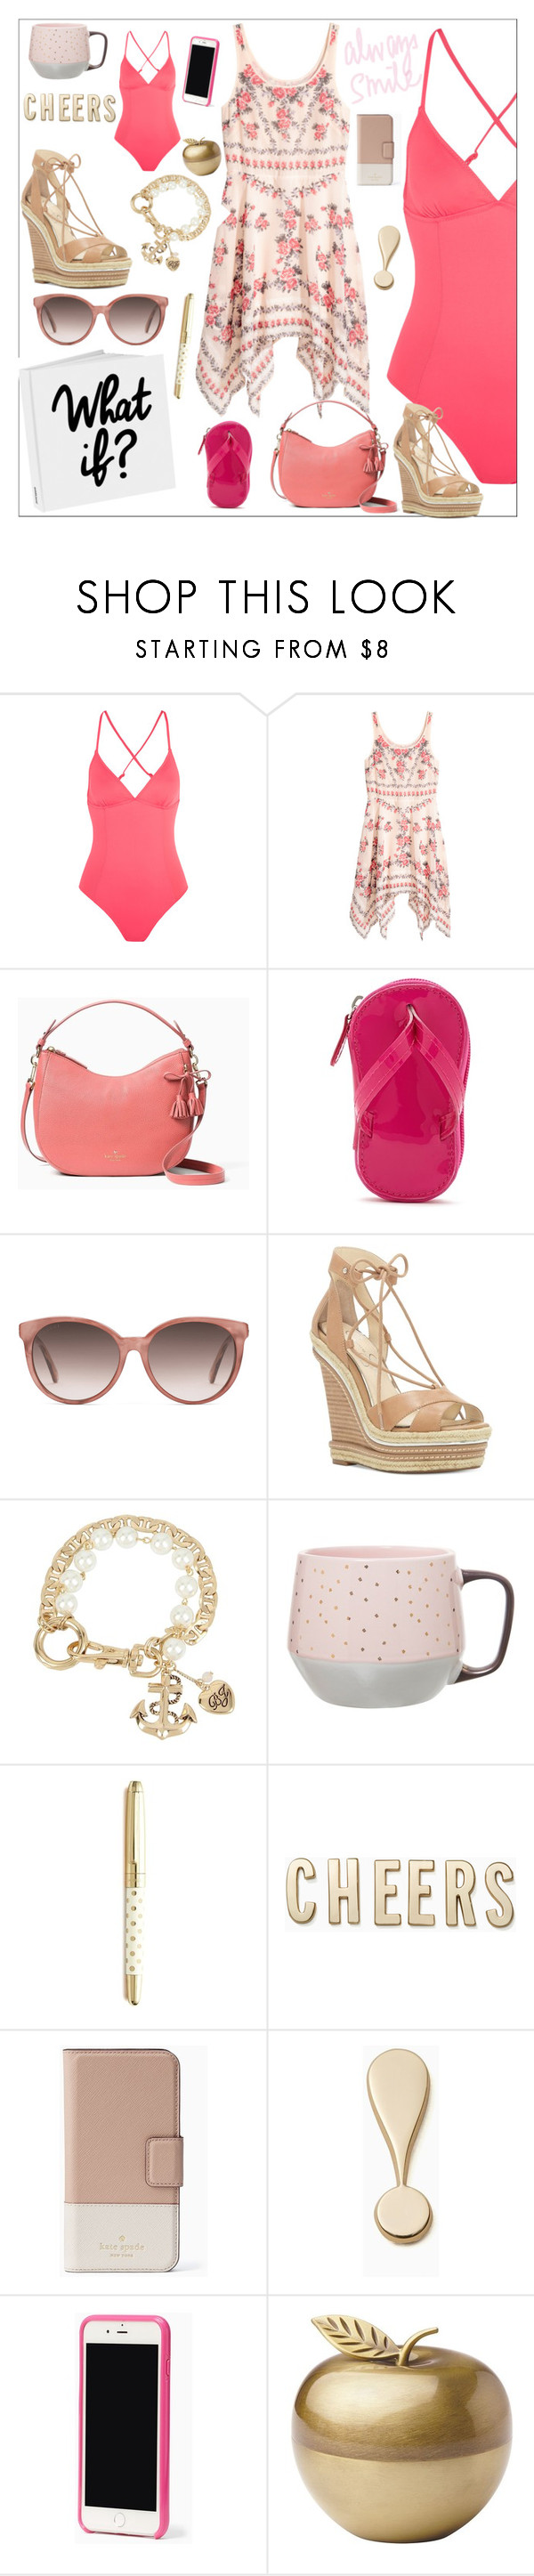 """What If"" by bitty-junkkitty ❤ liked on Polyvore featuring Eberjey, Kate Spade, Forever 21, Gucci, Jessica Simpson, Betsey Johnson and Clay Art"